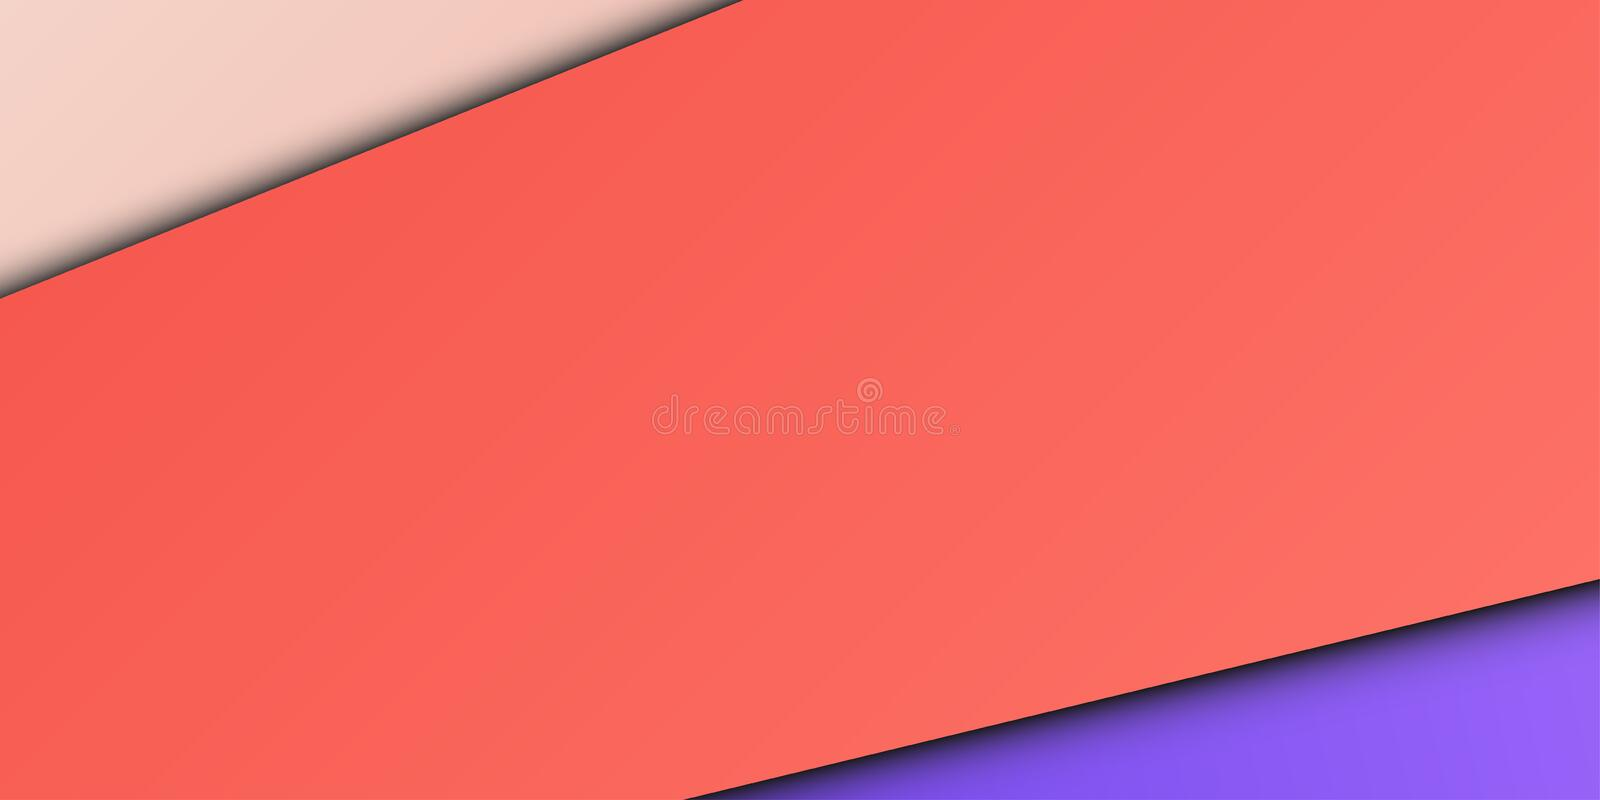 Trendy abstract design background advertisement mock up stock illustration